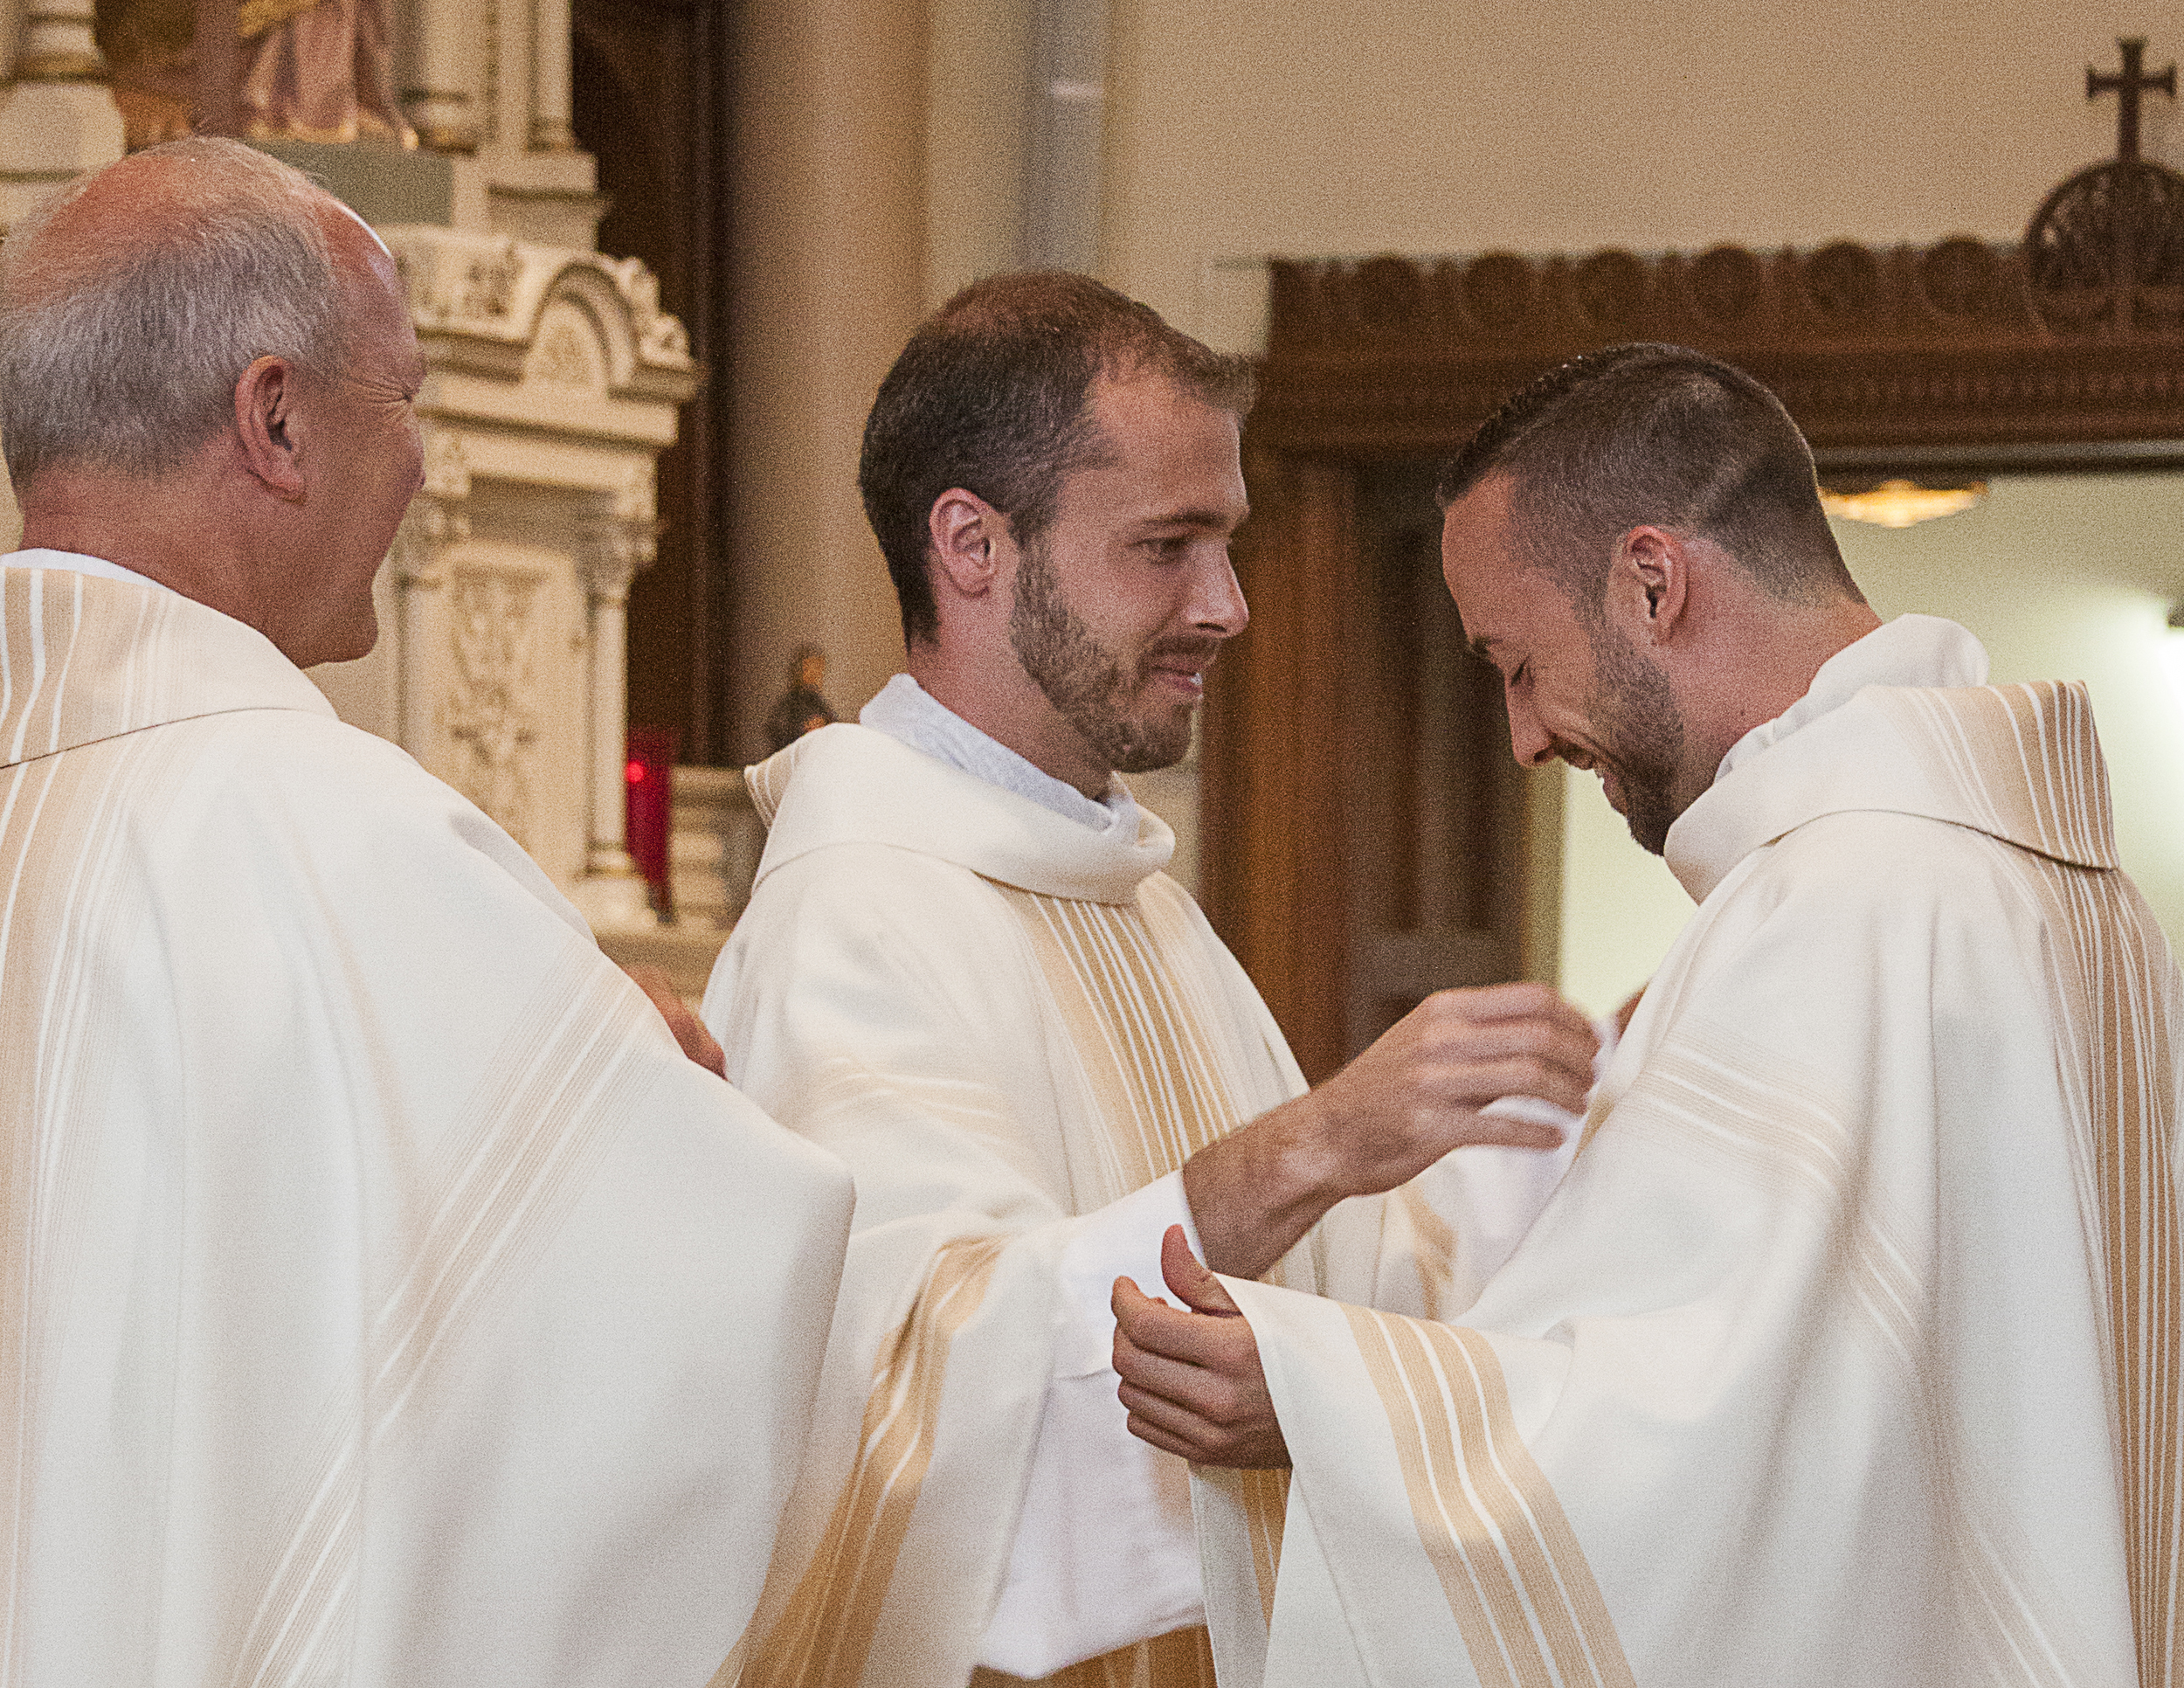 Ordination_0583.jpg